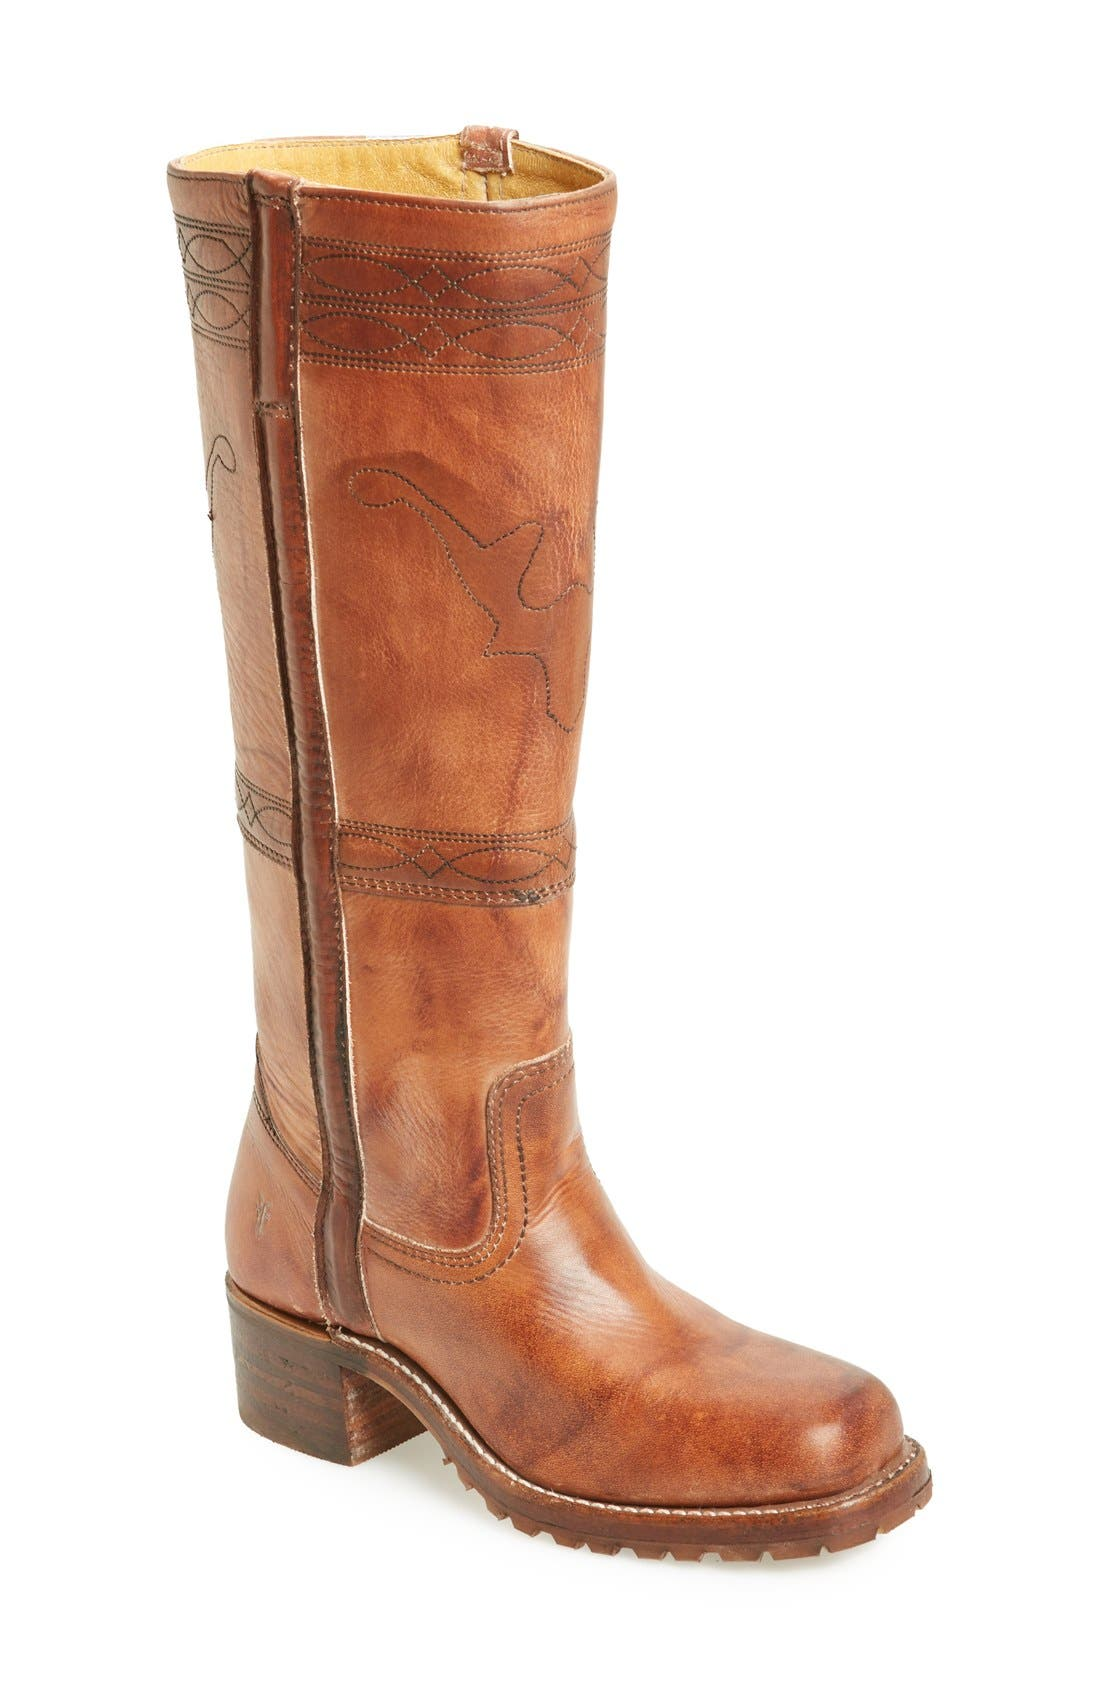 Alternate Image 1 Selected - Frye 'Campus' Riding Boot (Women)